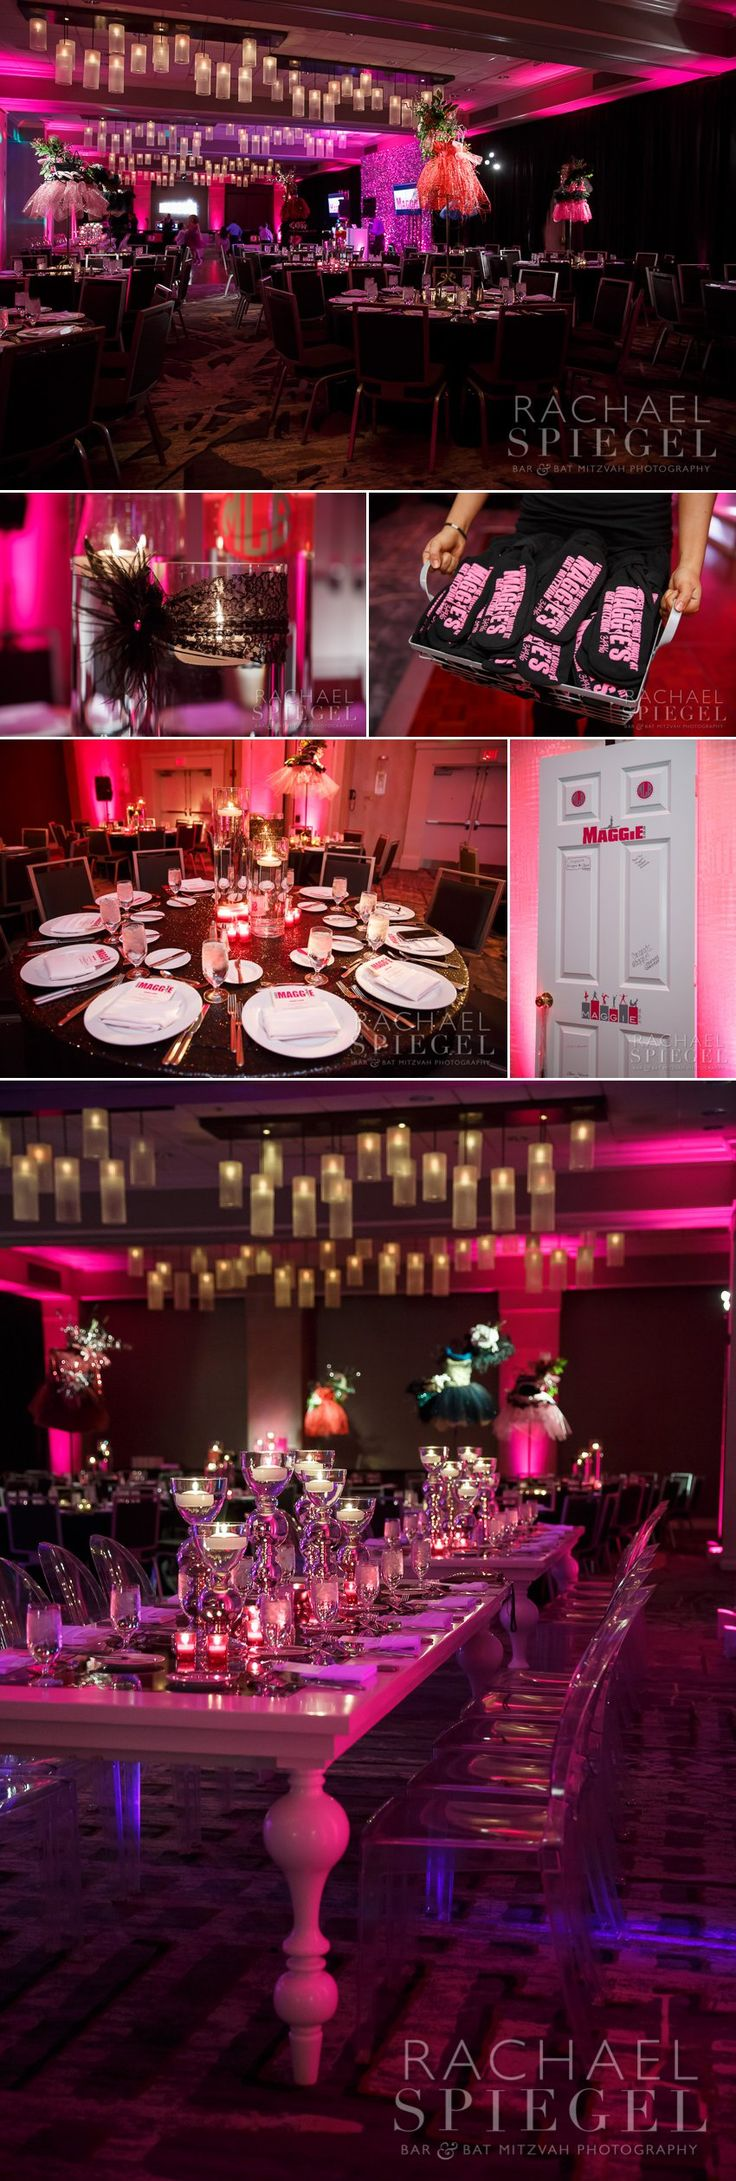 Bar mitzvah decor south florida mitzvah production by 84 west events - 86 Best Holly S Bat Mitzvah Images On Pinterest Bats Bar Mitzvah And Bat Mitzvah